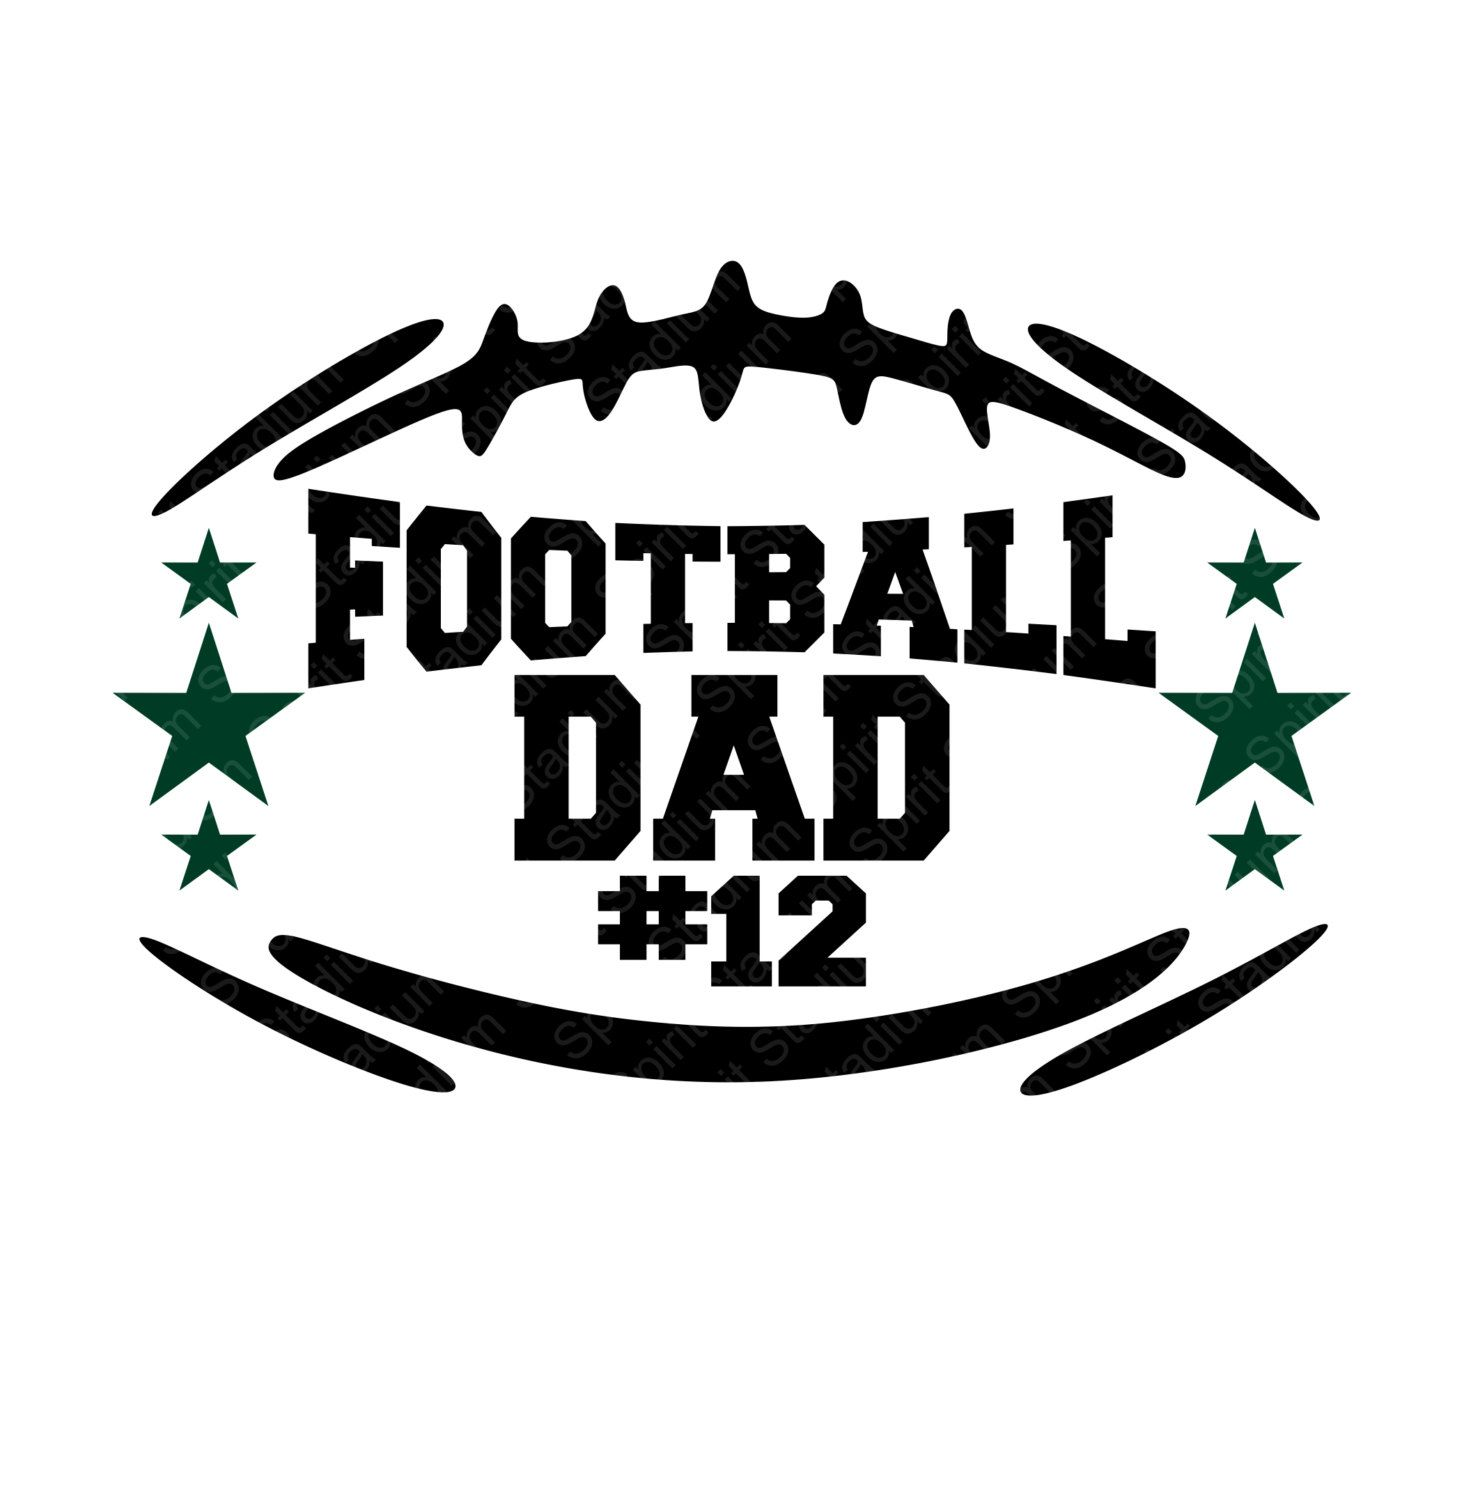 Football Dad Shirt with Players Number.